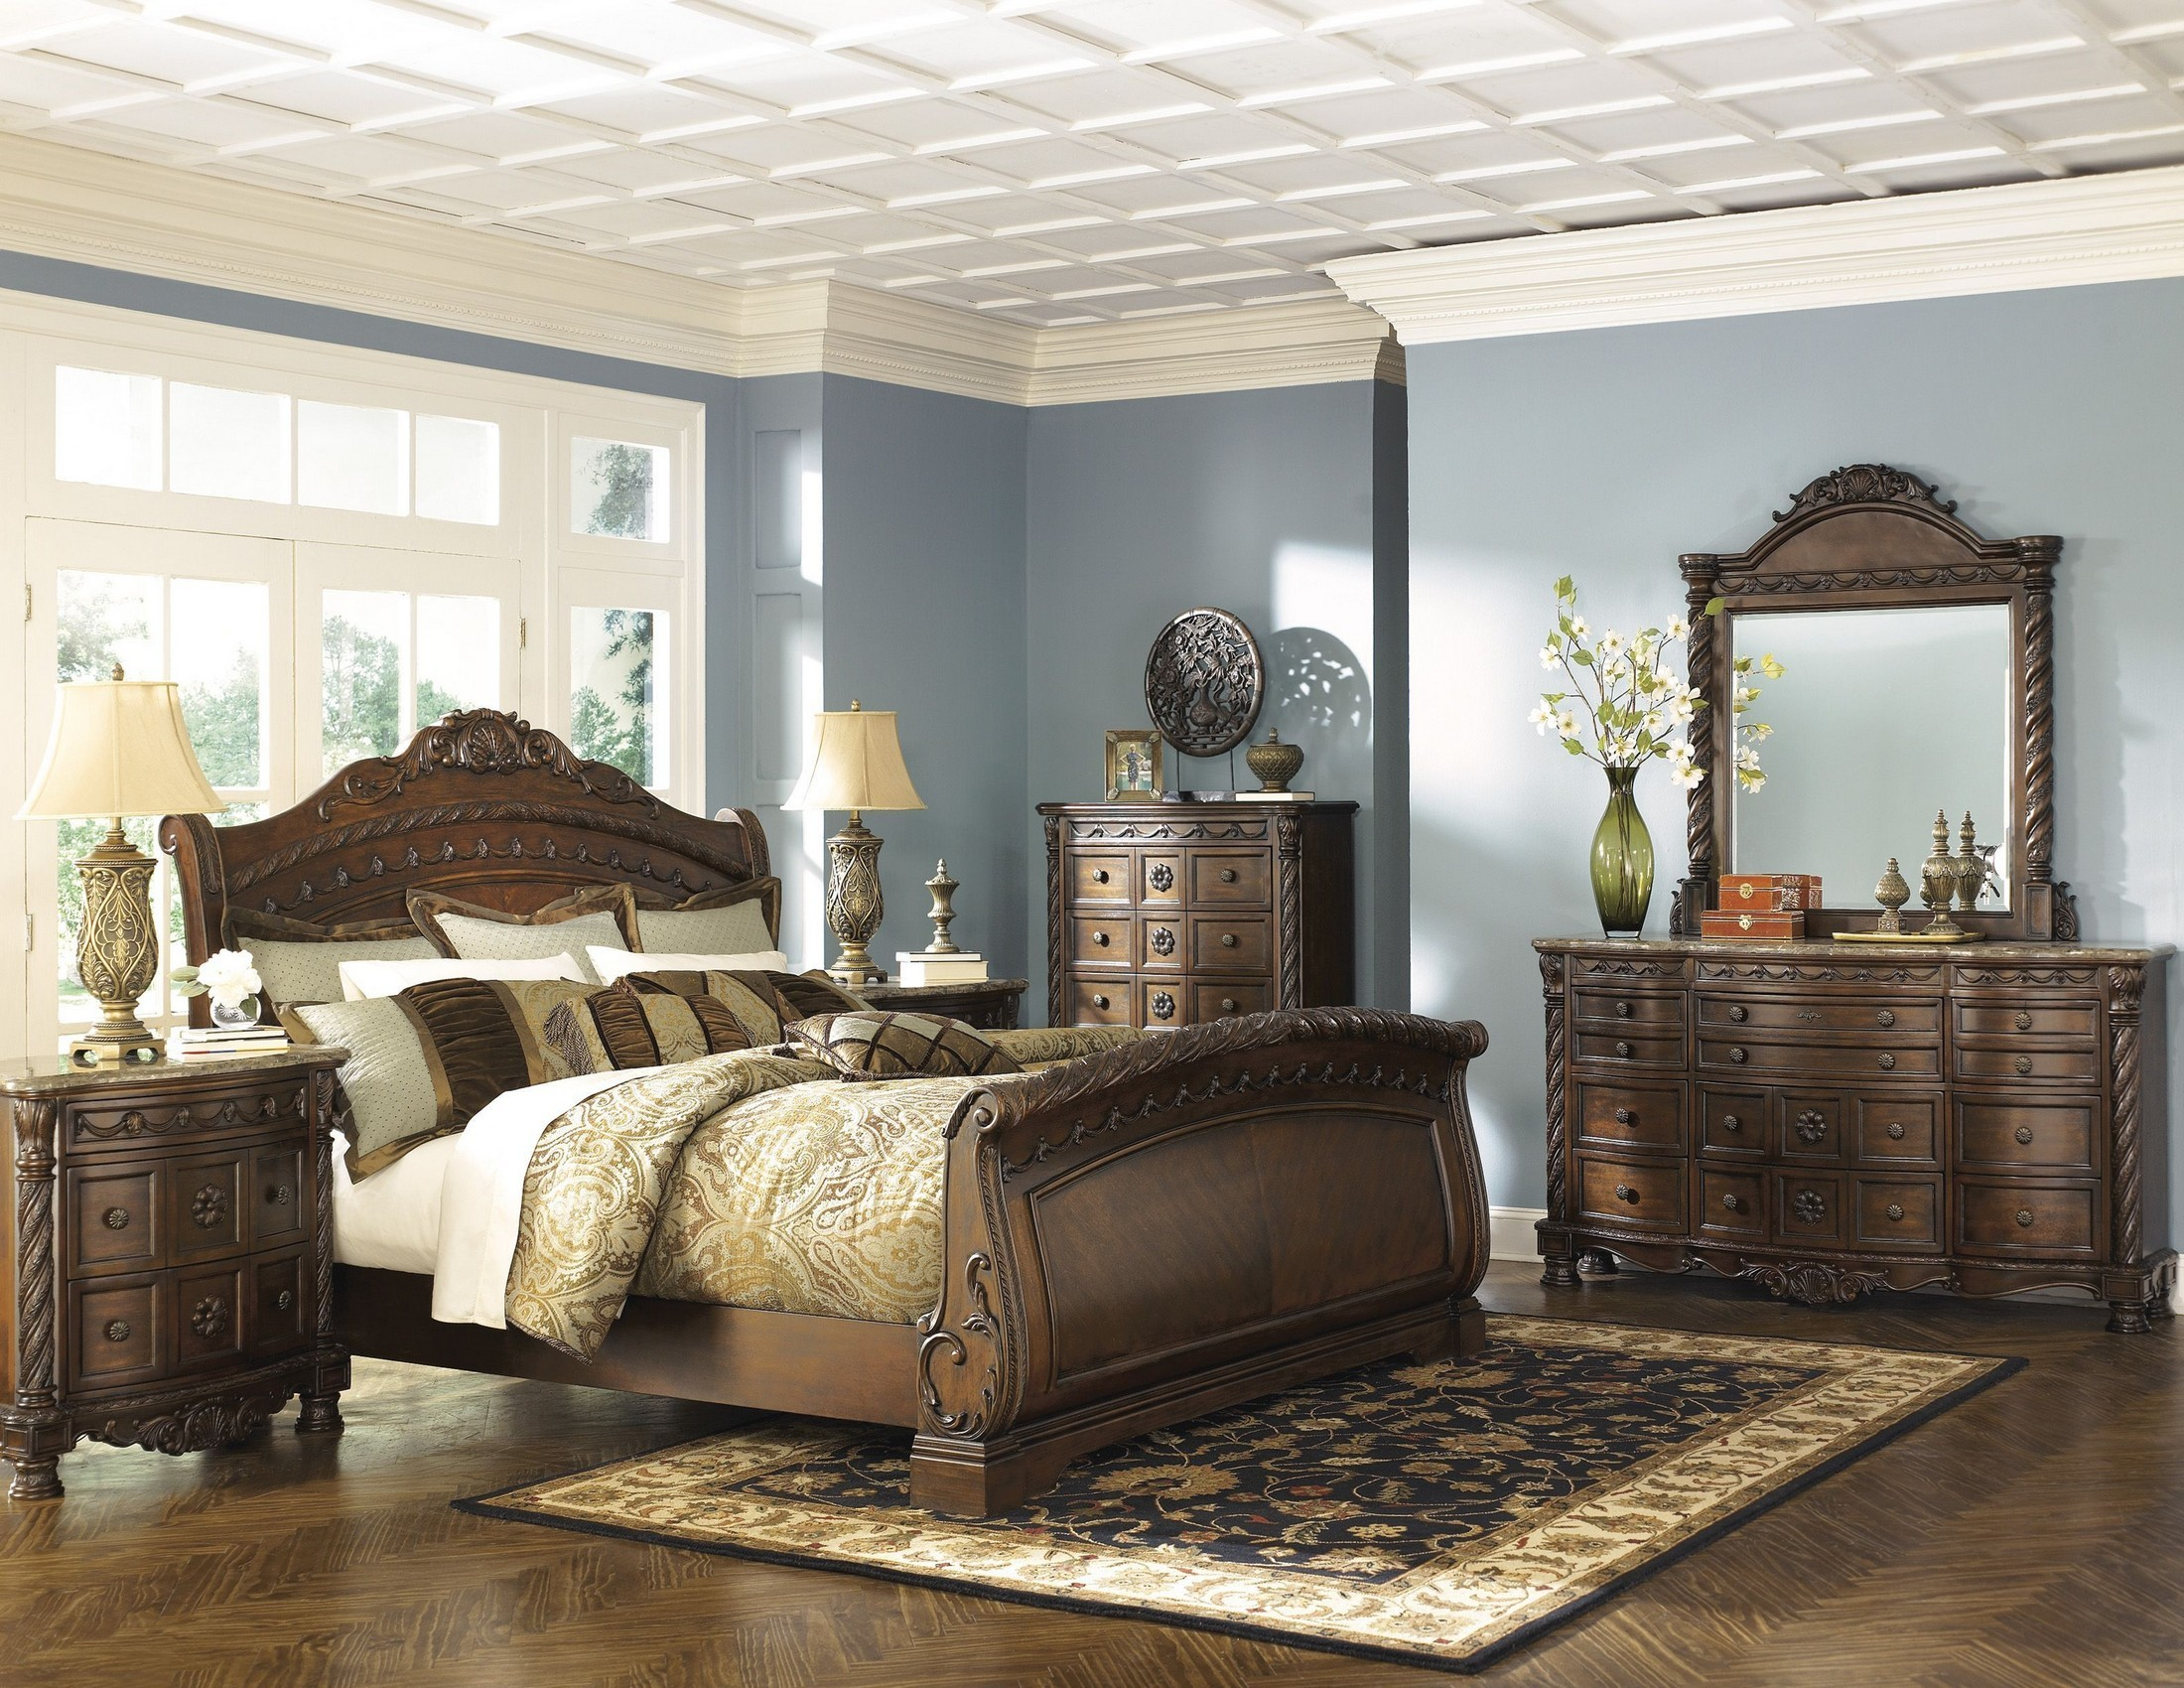 Storage Beds Edmonton Bedroom Sets Coleman Furniture